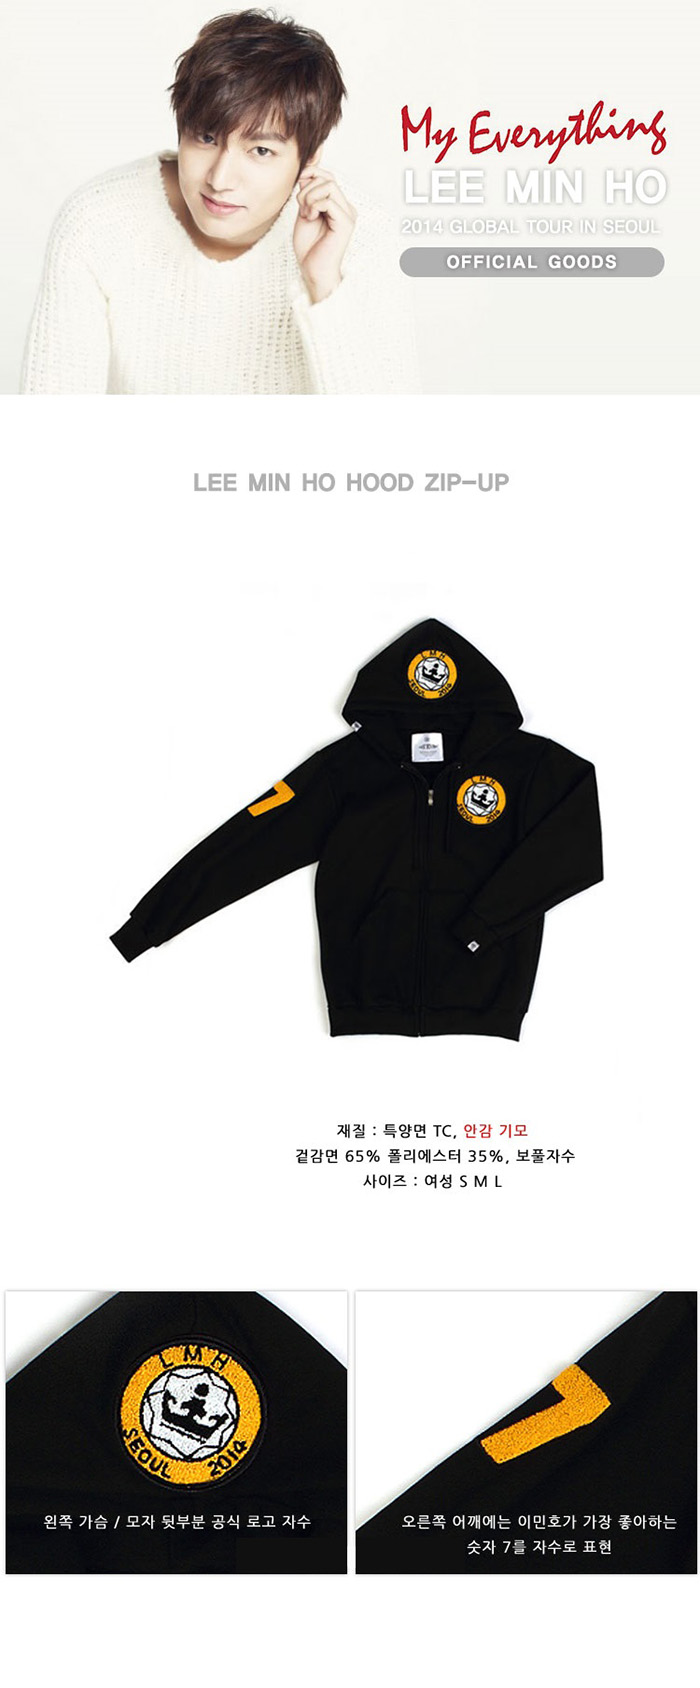 [ K-POP ] (My Everything Ancore Concert Official Goods) Lee Min Ho - Hood Zip-Up (M)